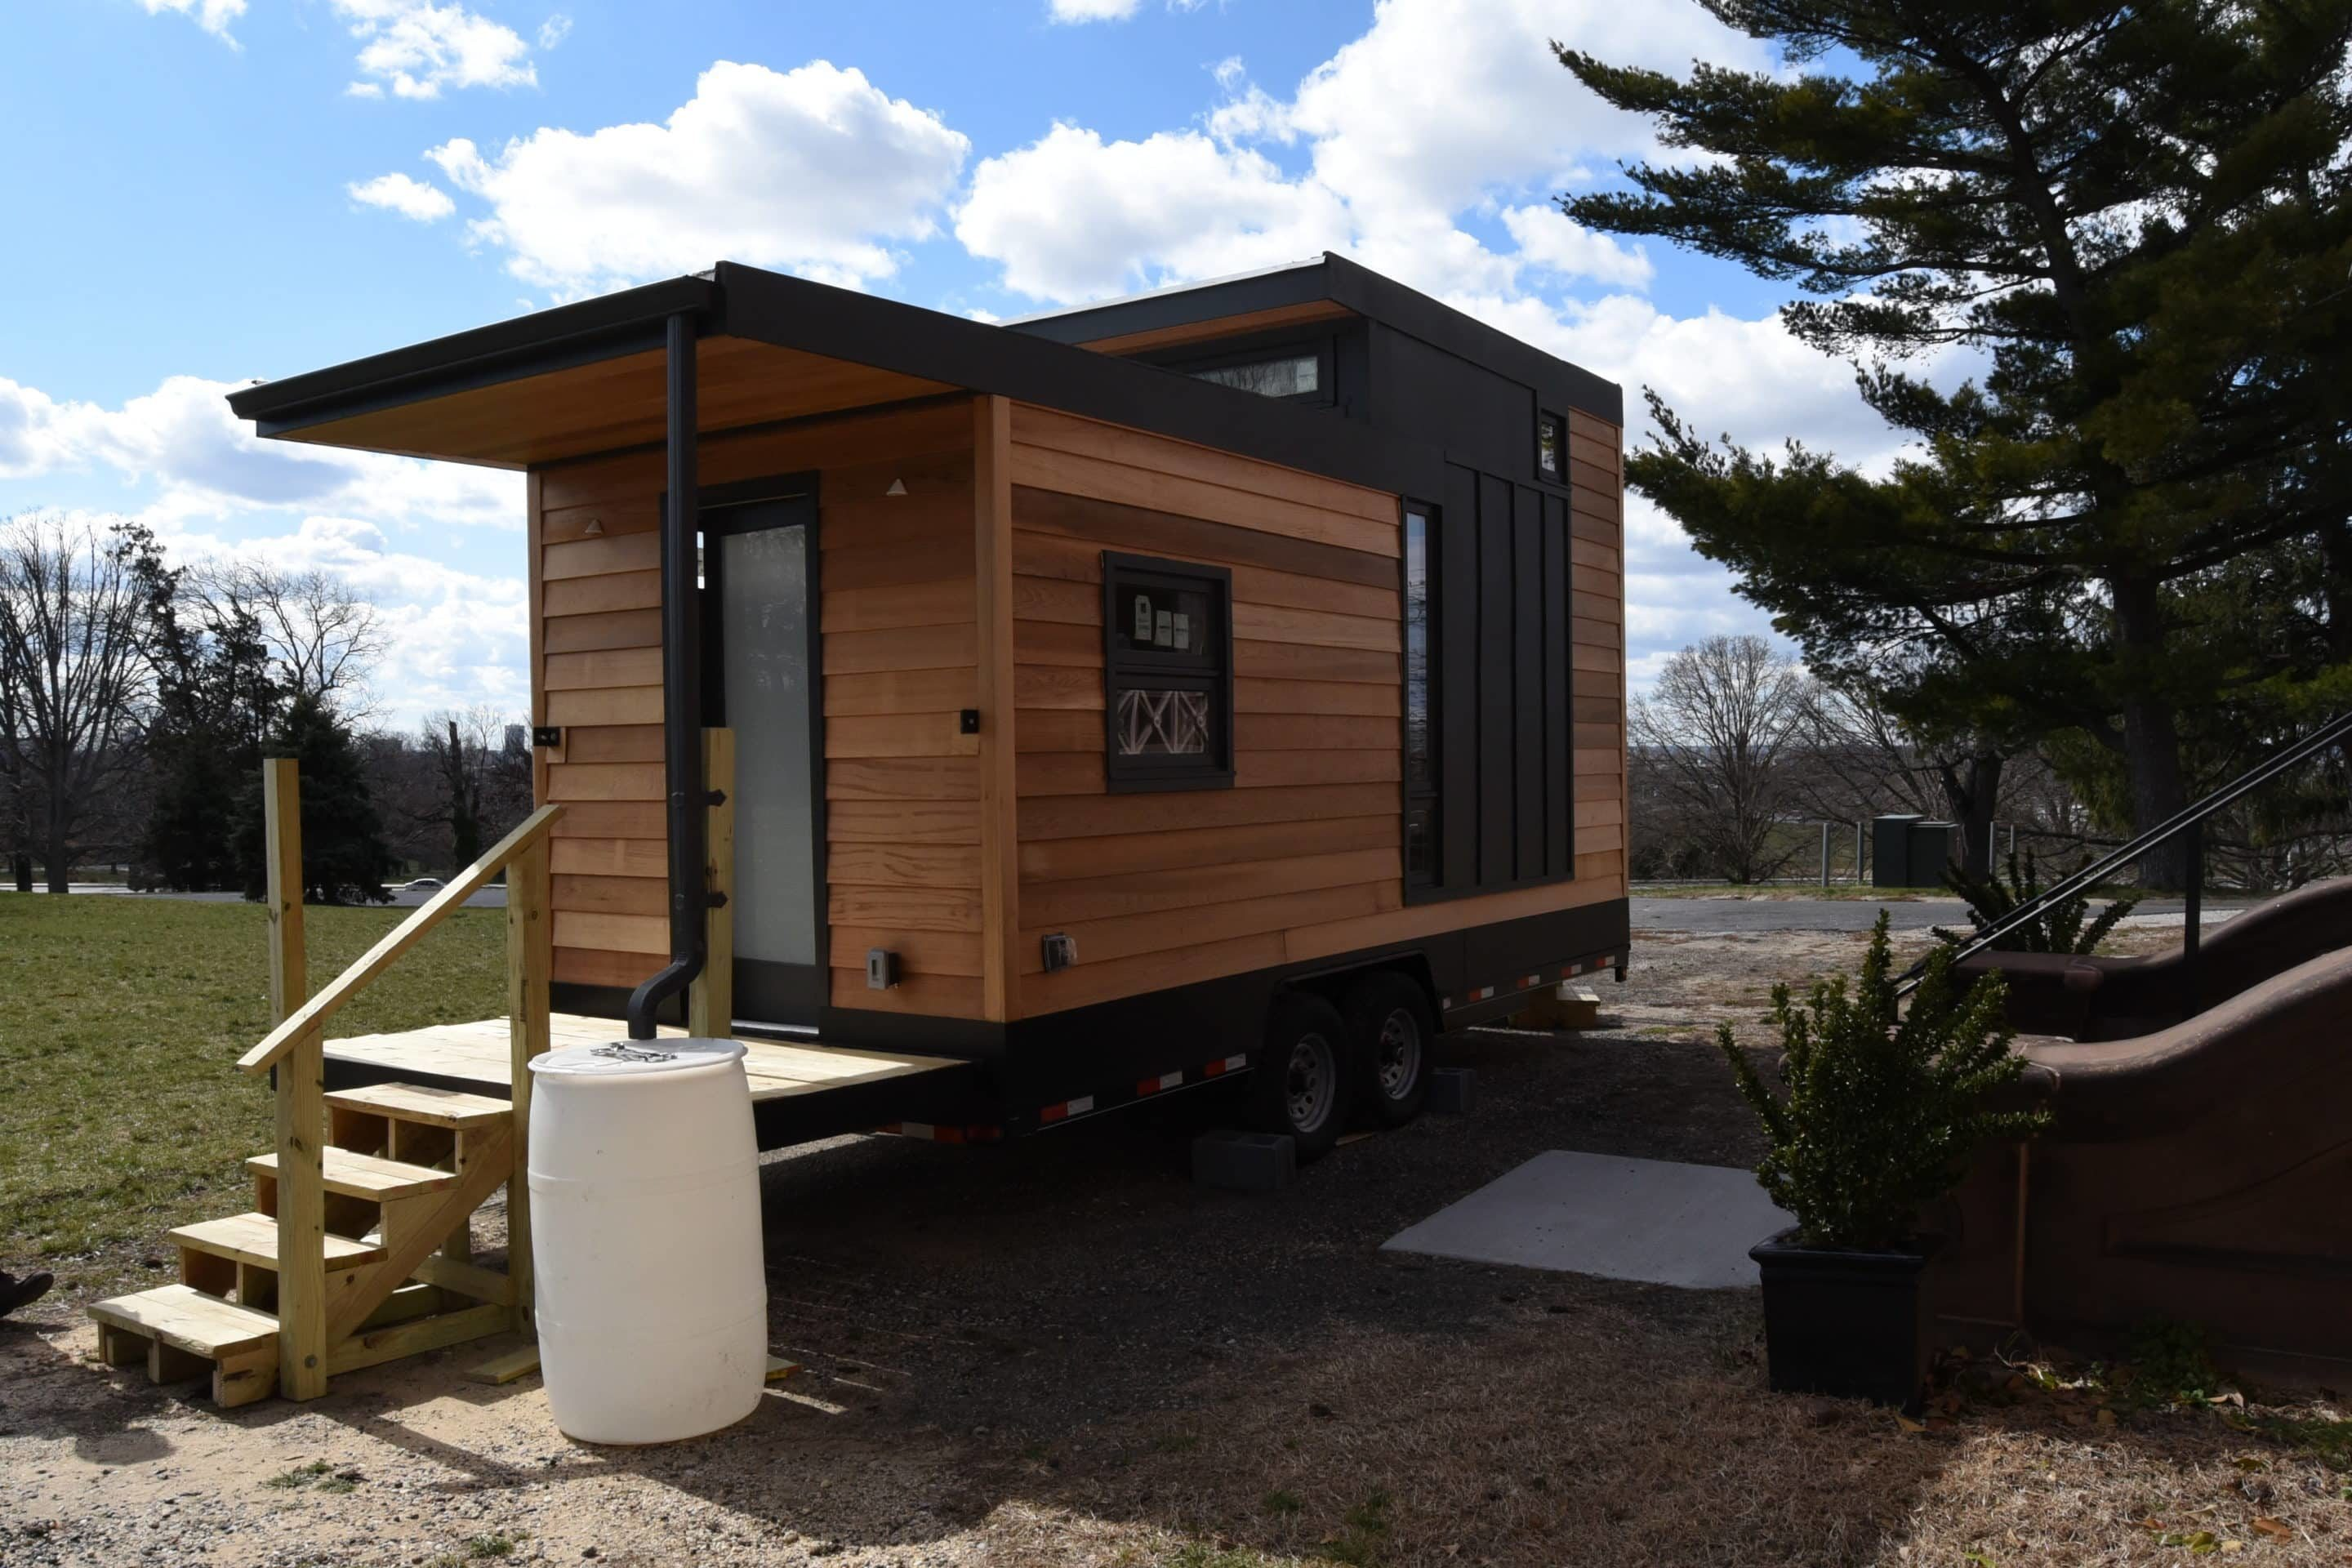 Tiny House Prix M2 tiny house on wheel made in france in galvanized steel